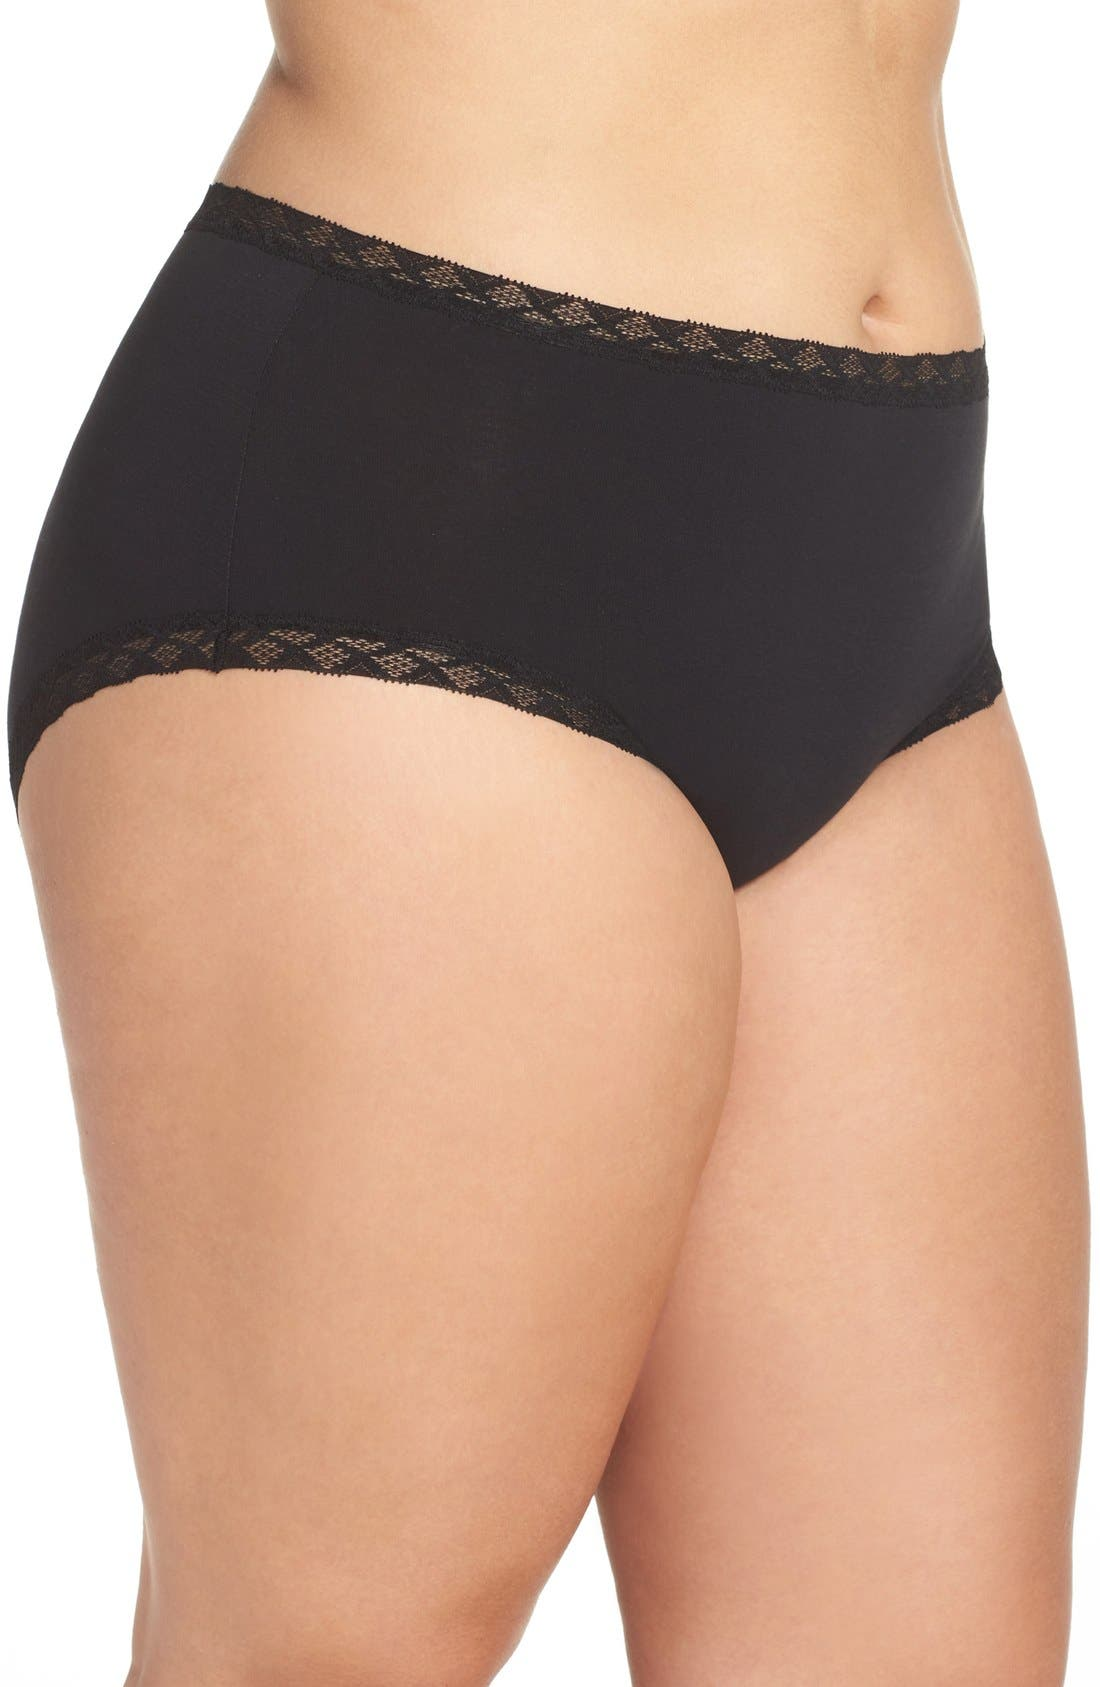 Bliss Cotton Full Brief,                             Alternate thumbnail 7, color,                             BLACK